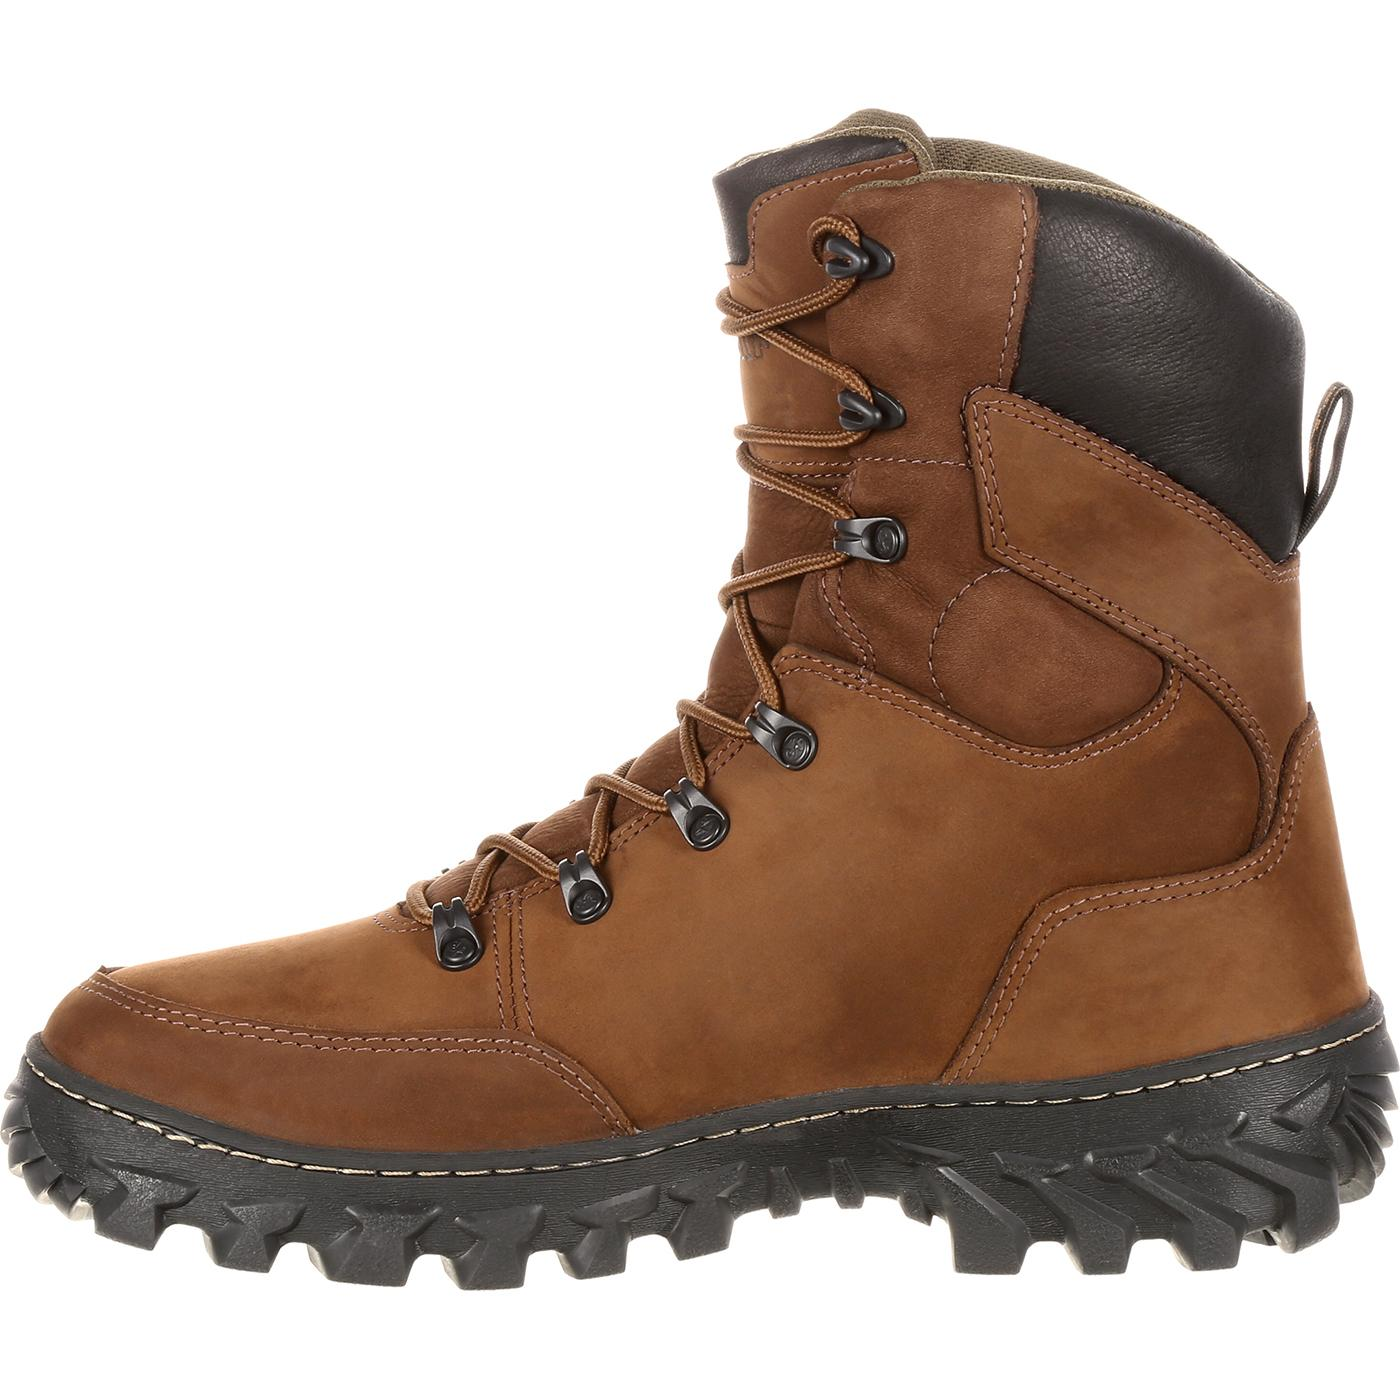 Images. Rocky S2V Jungle Hunter Waterproof 200G Insulated Outdoor Boot ...